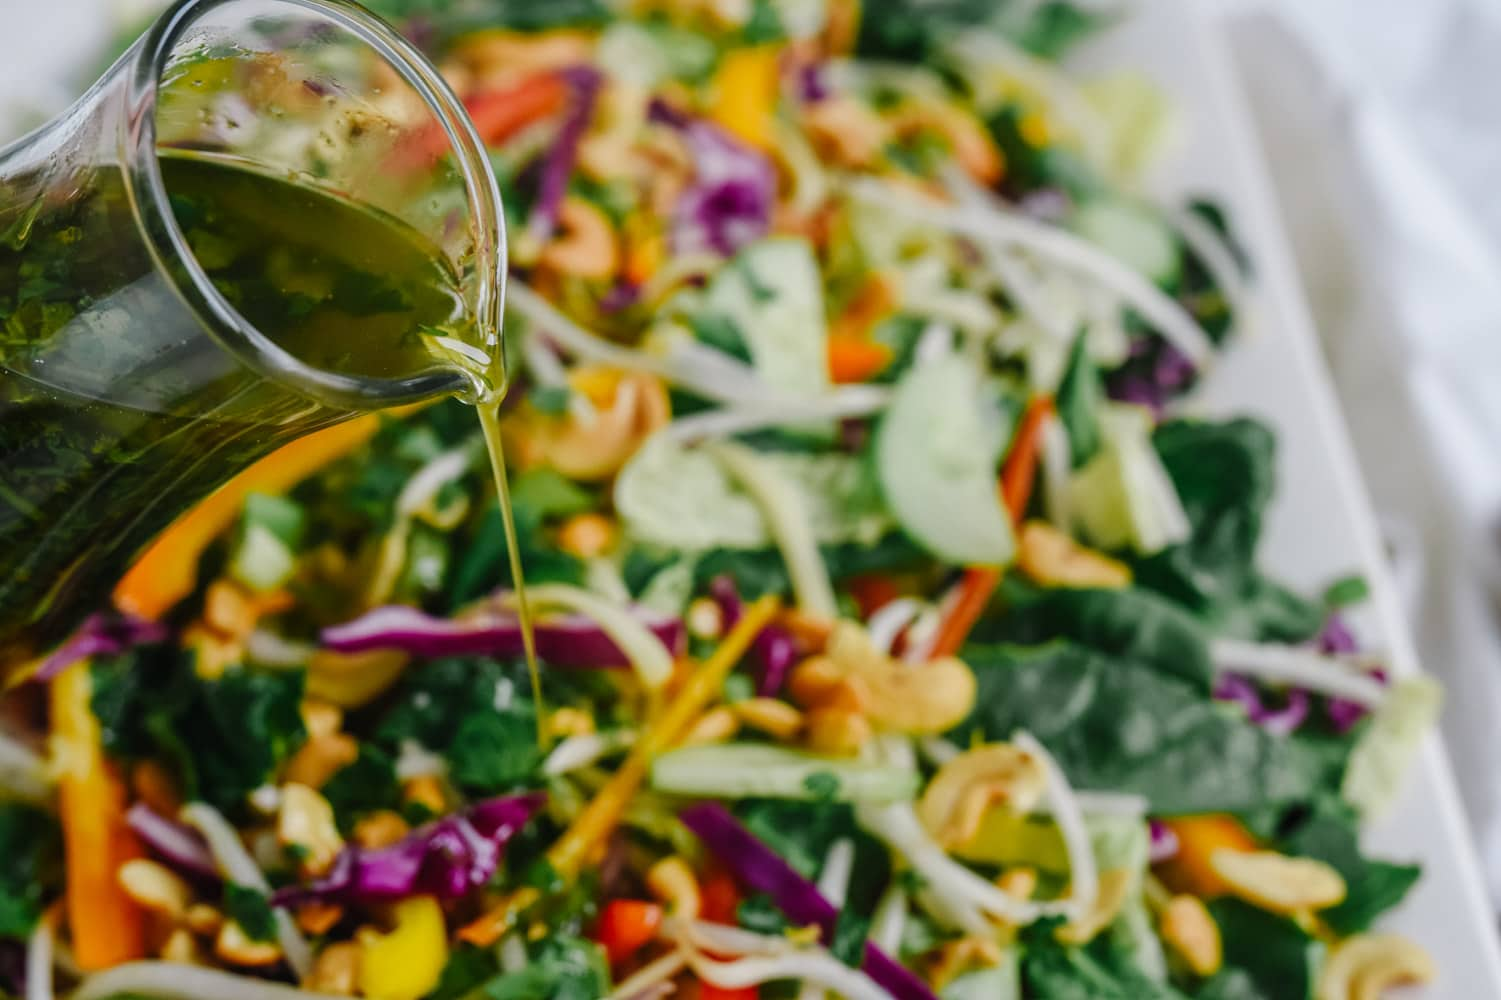 pouring dressing on asian noodle salad